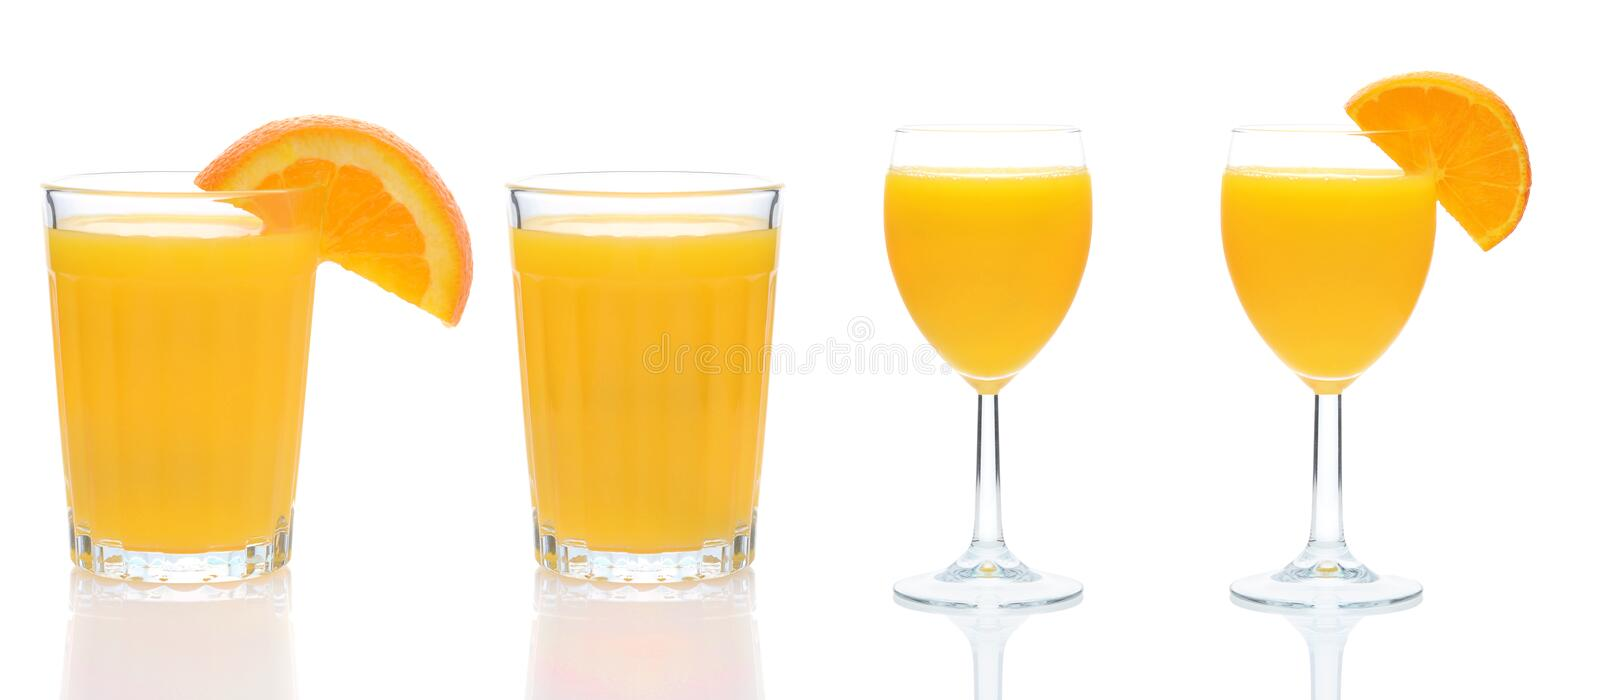 Four glasses of Fresh Squeezed Orang Juice with reflection isolated on white stock images